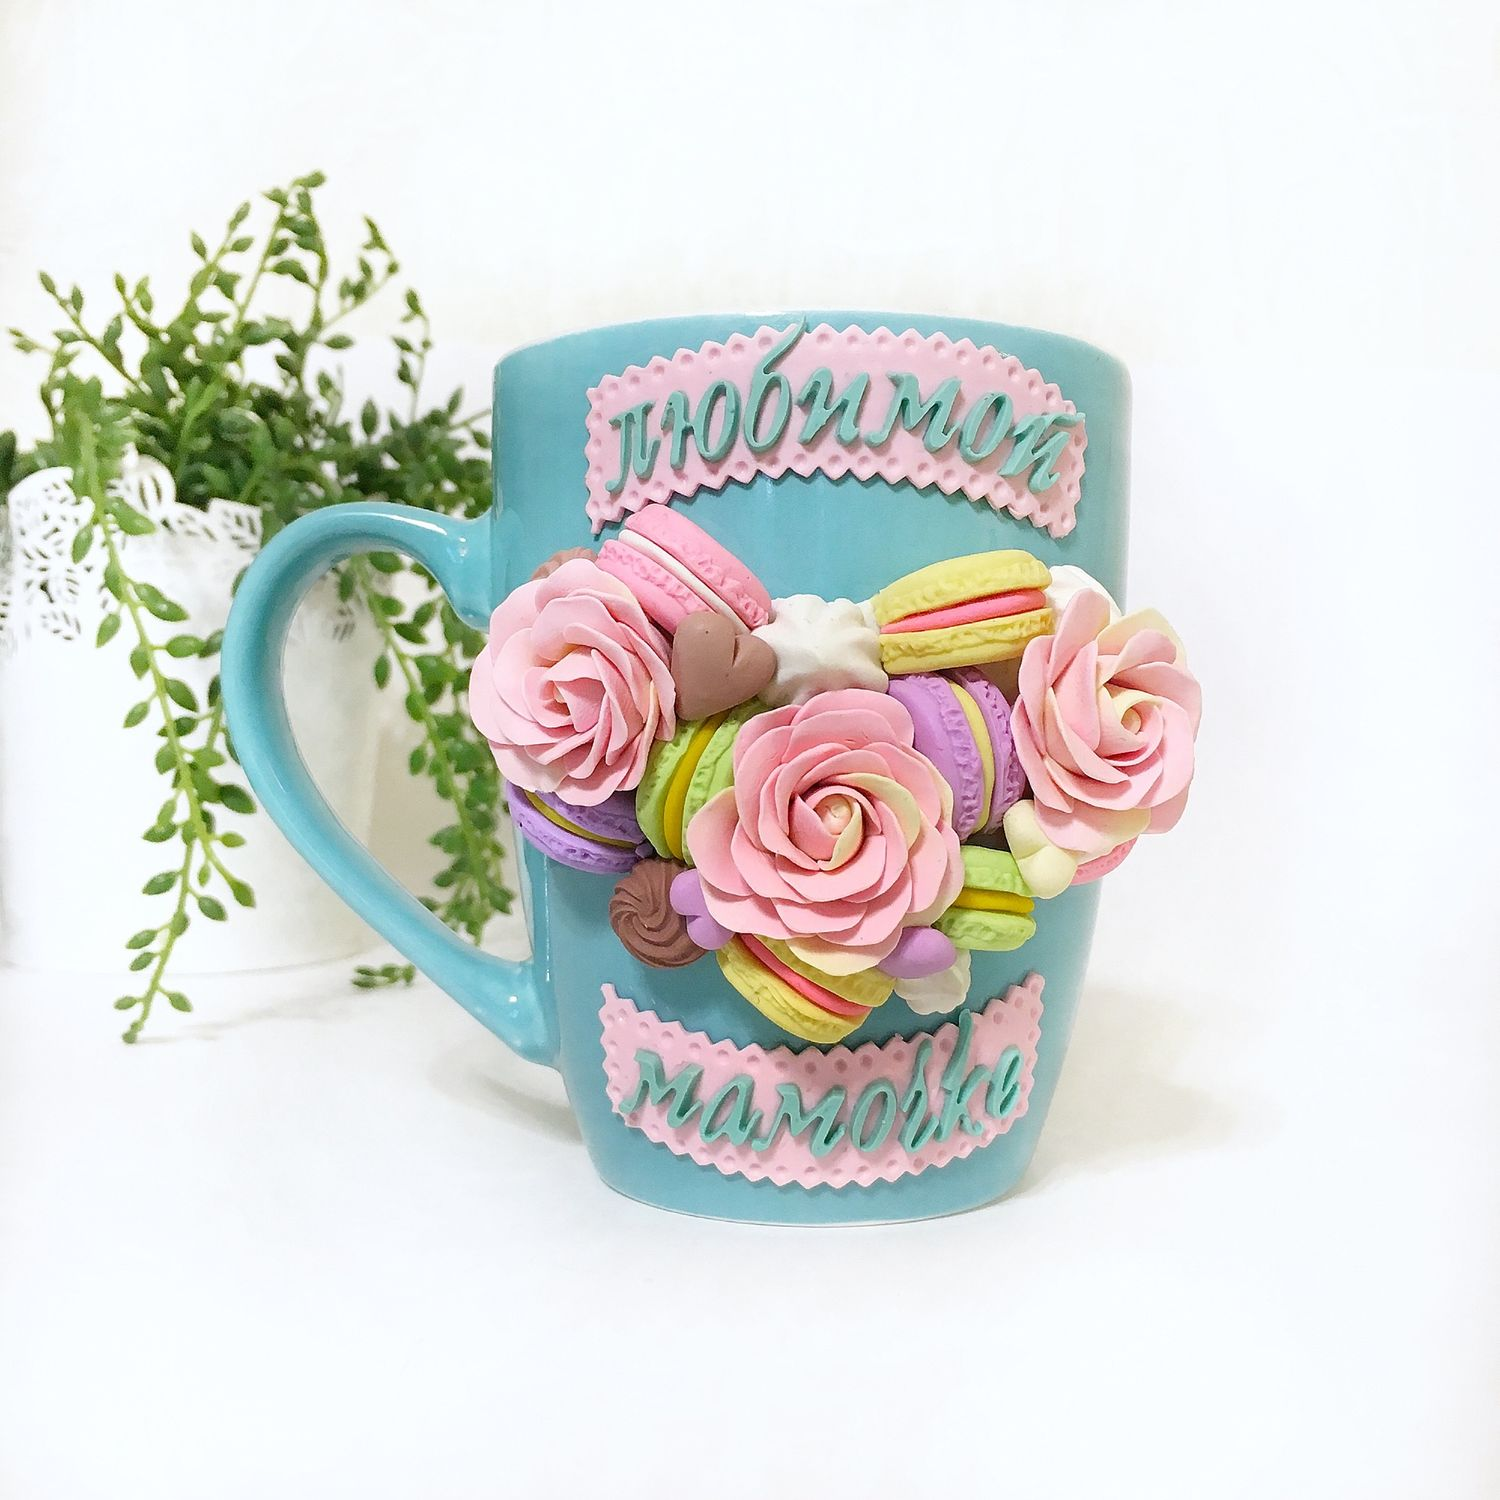 Unique Mug With Decor Made Of Polymer Clay Peonies A Present For Any Friends An Original Gift For Any Occasion Cups Cups Mugs Saucers